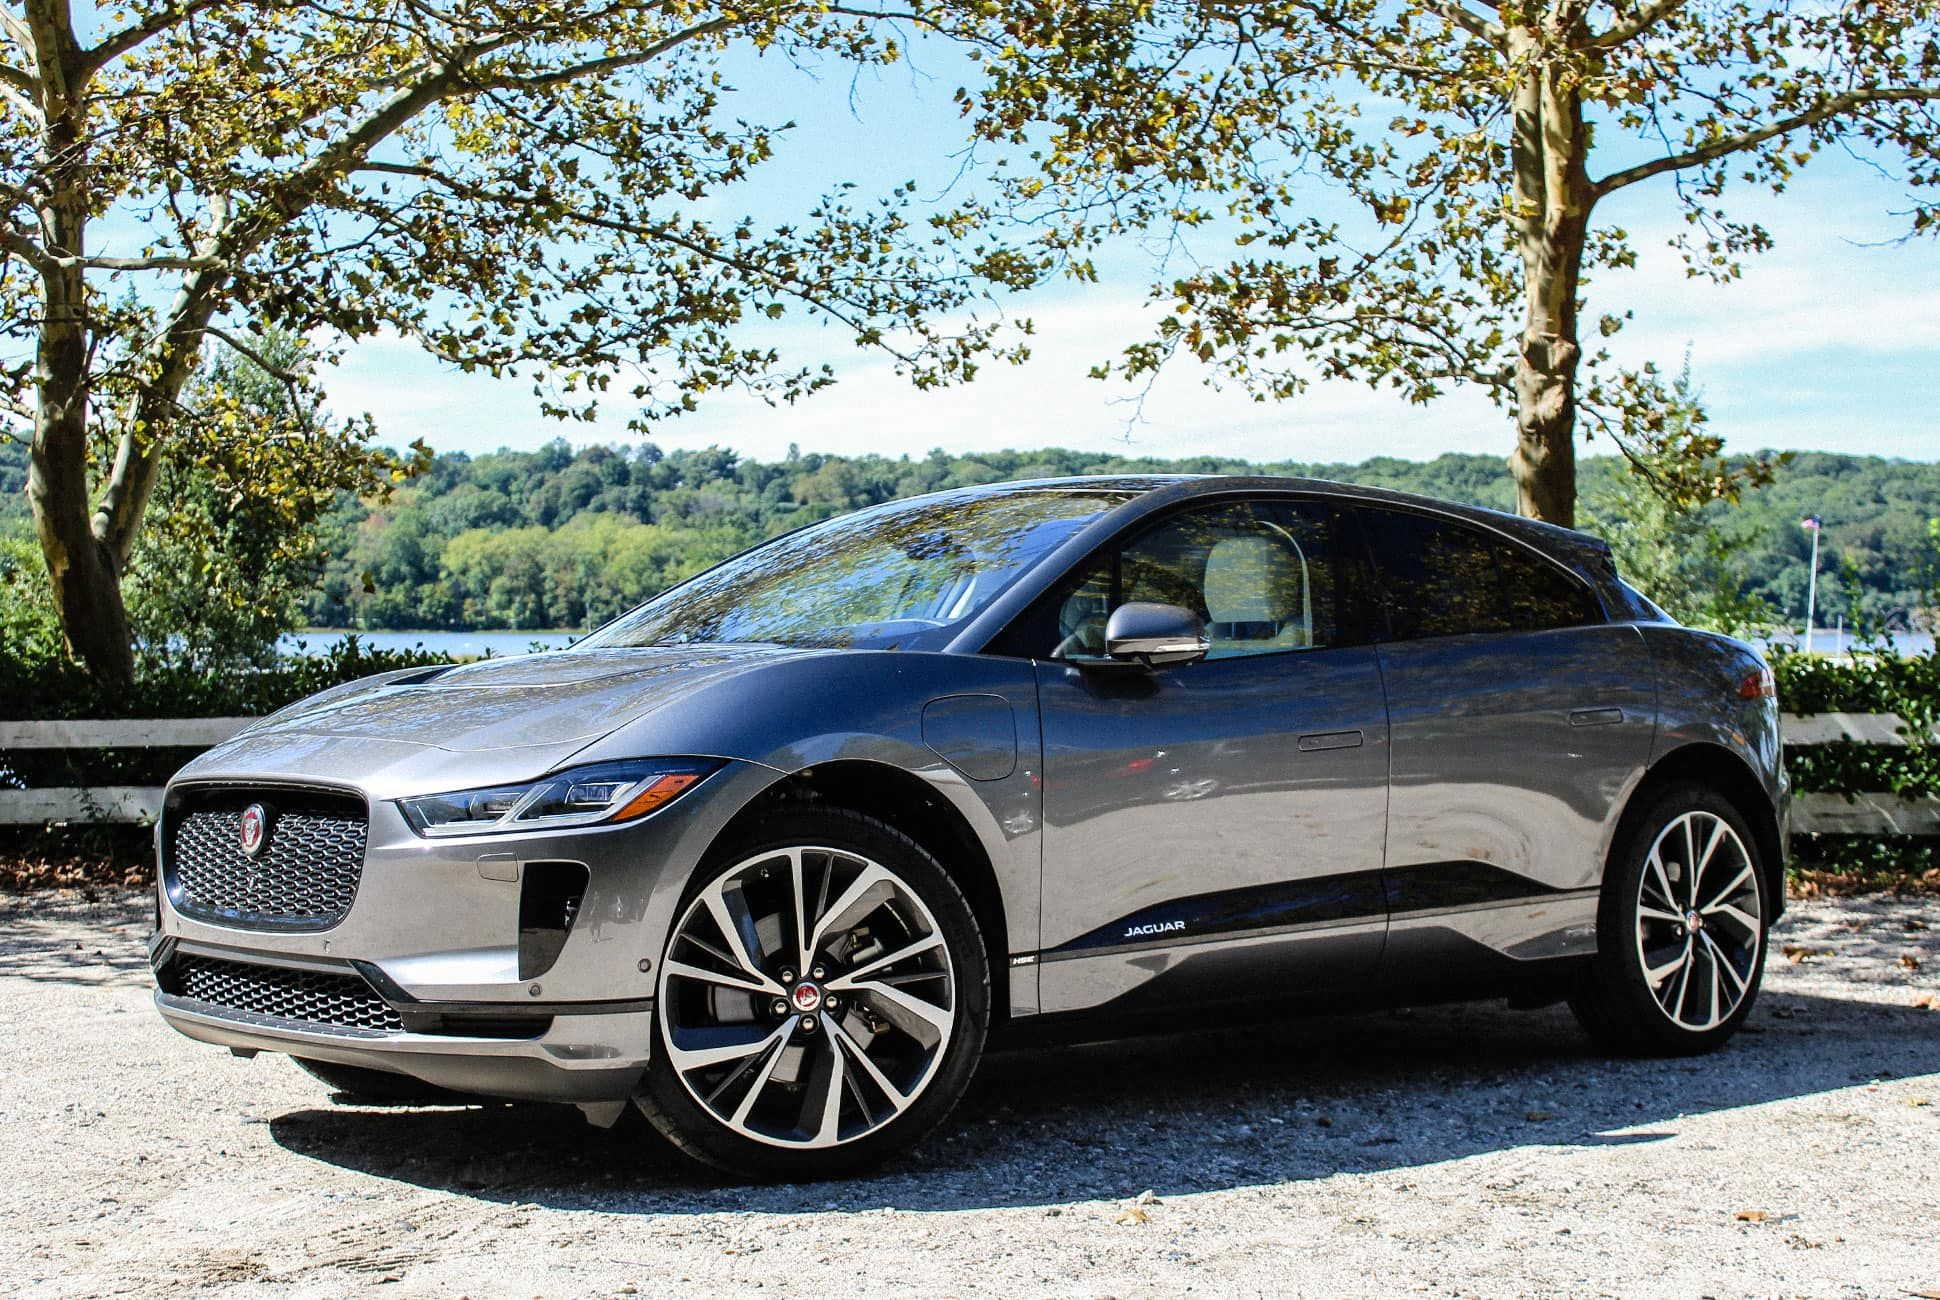 Jaguar IPace Review Is It Better Than a Tesla Model X